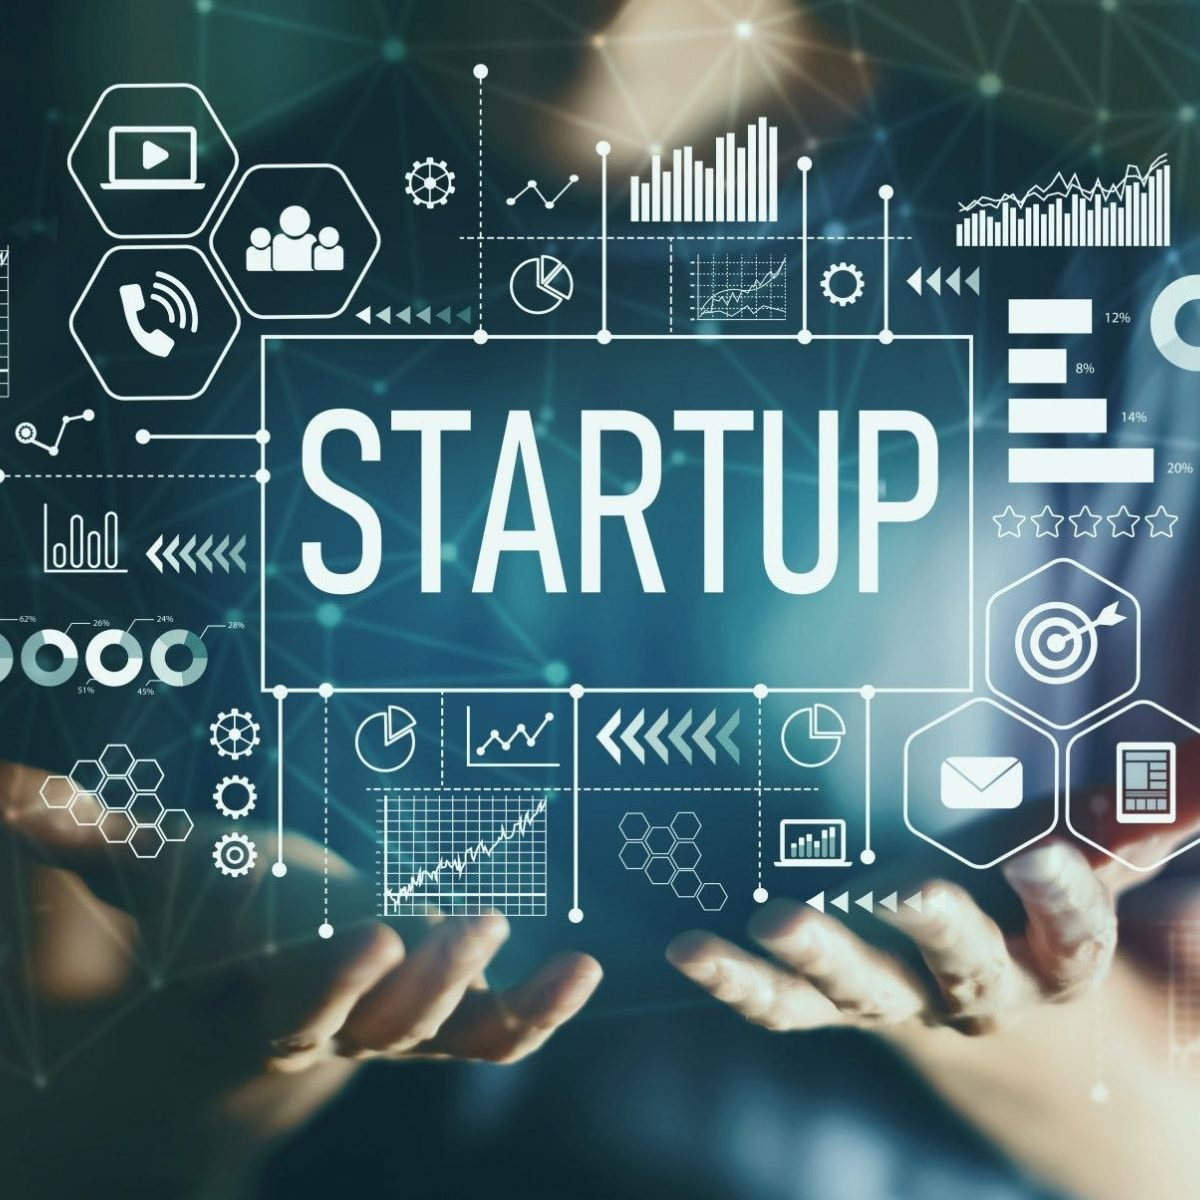 Startup siliconvalley high tech innovatie